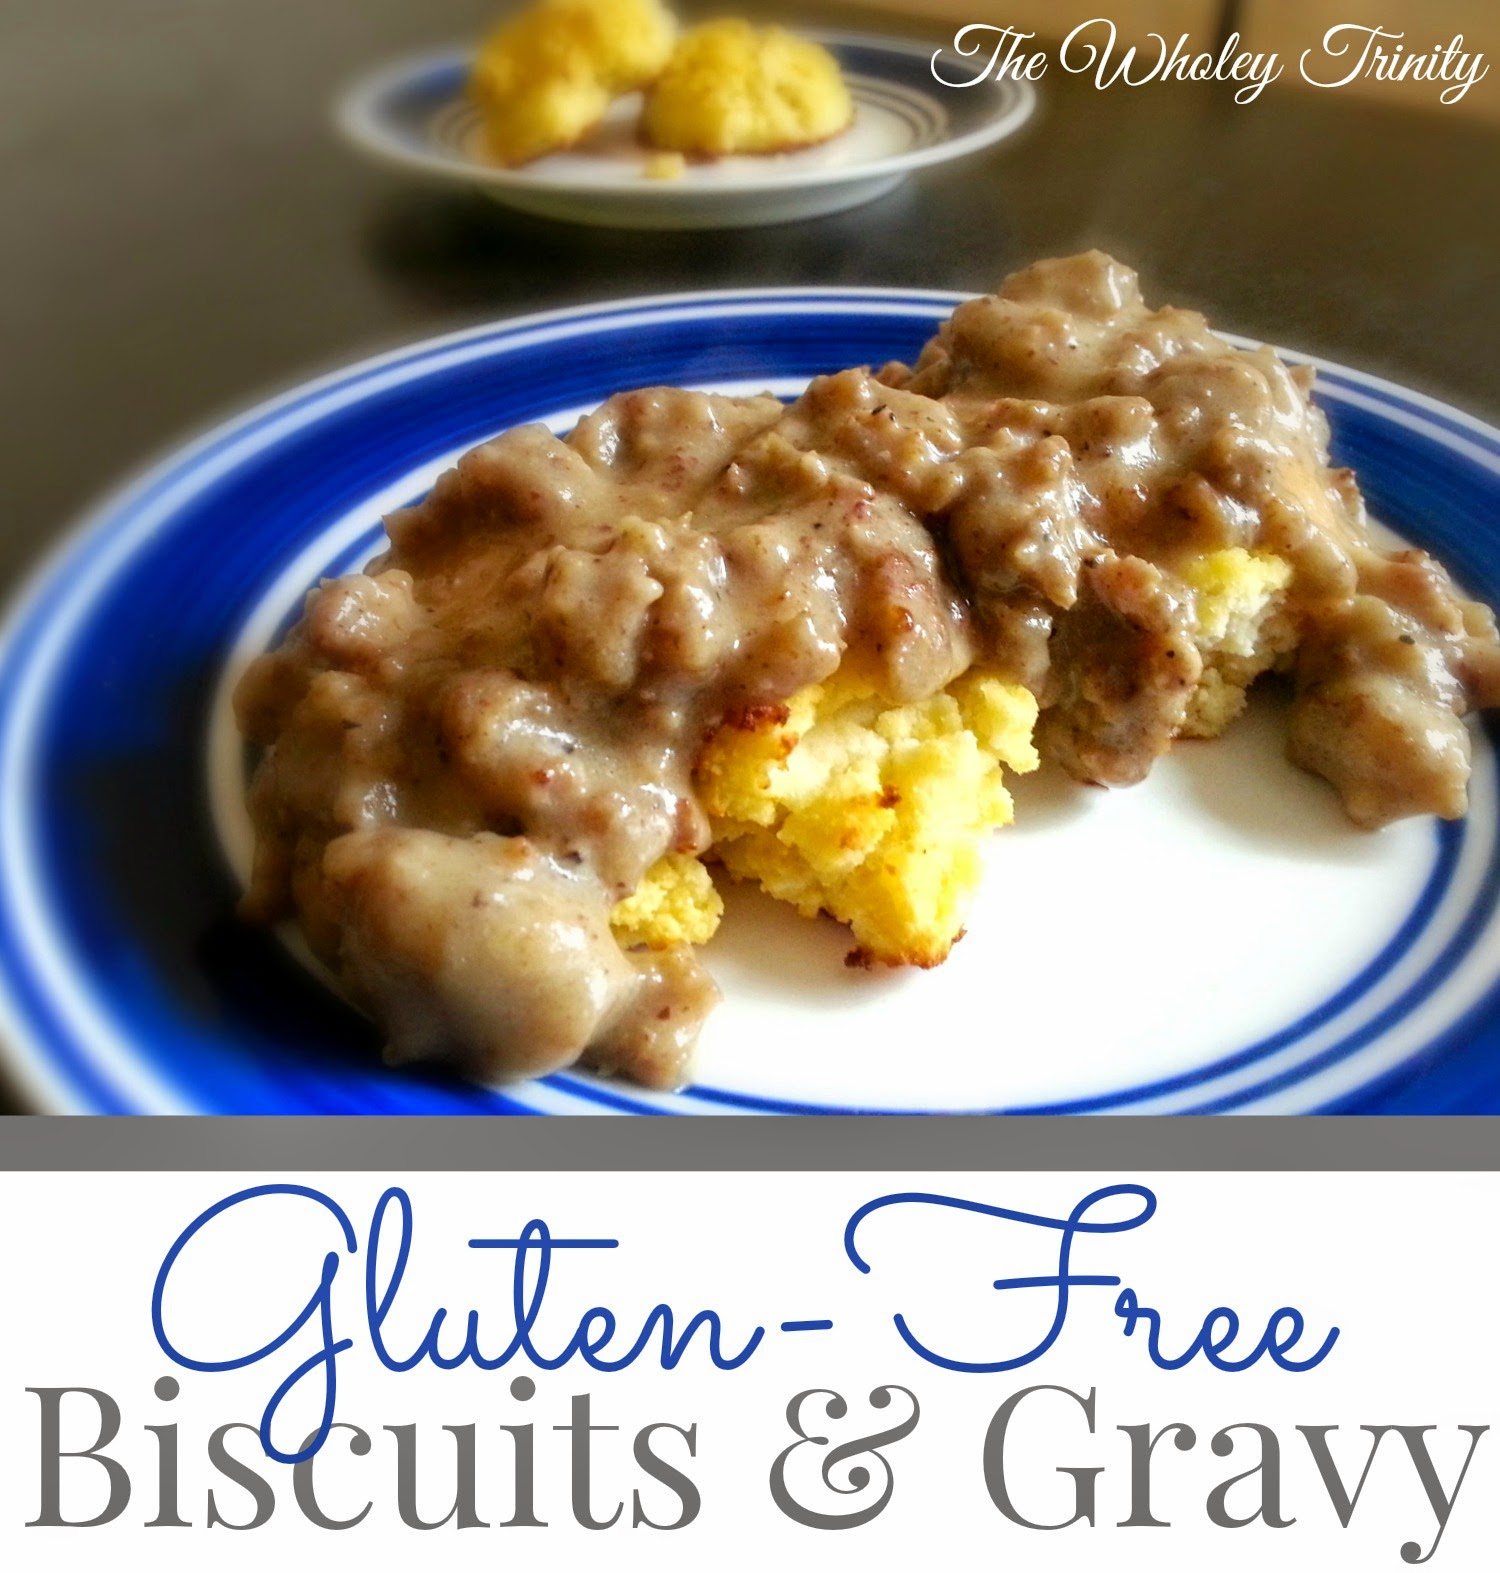 Gluten-Free Biscuits and Gravy from The Wholey Trinity